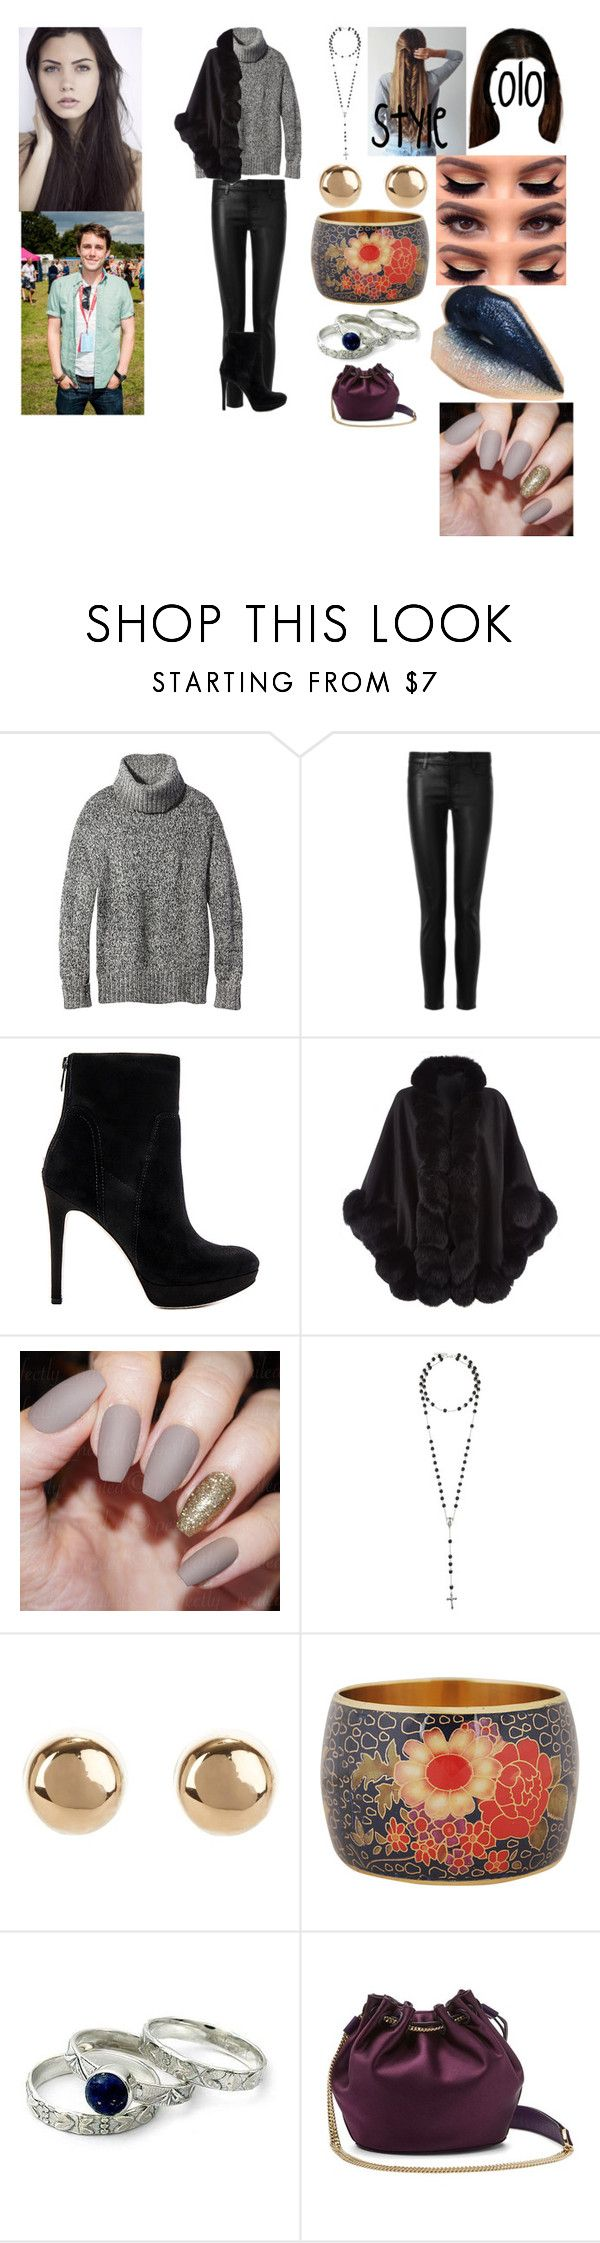 """""""A Kardashian in London (Chris Stark Love Story)"""" by anaeve ❤ liked on Polyvore featuring Theory, J Brand, Sam Edelman, Harrods, Givenchy, Jules Smith, Forever 21, NOVICA and Diane Von Furstenberg"""